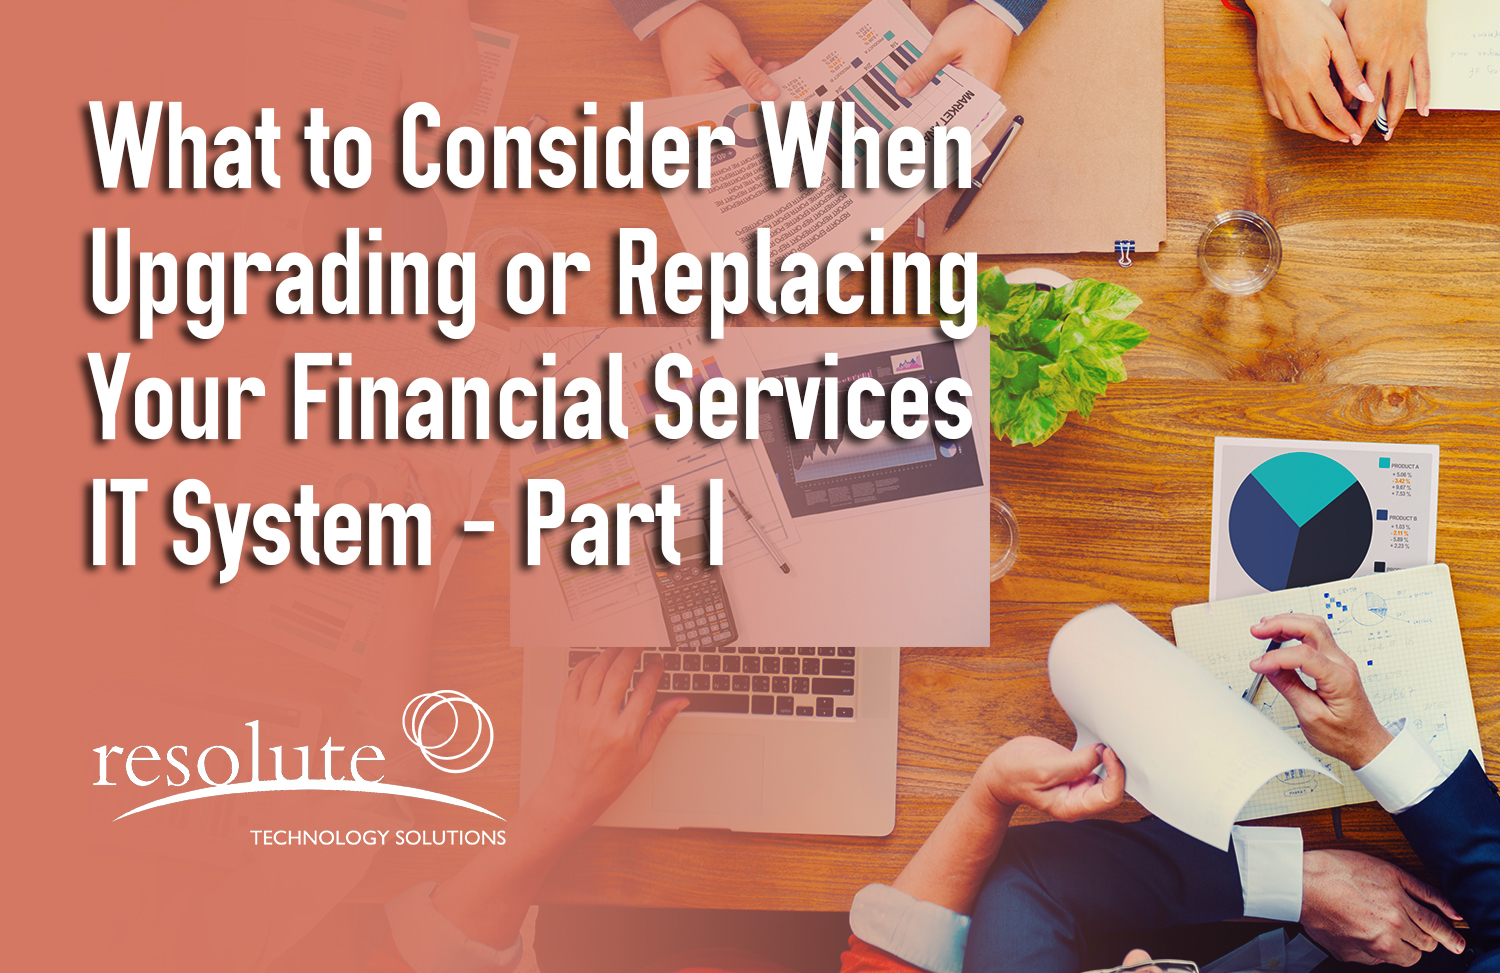 What to Consider When Upgrading or Replacing Your Financial Services IT System: Part 1